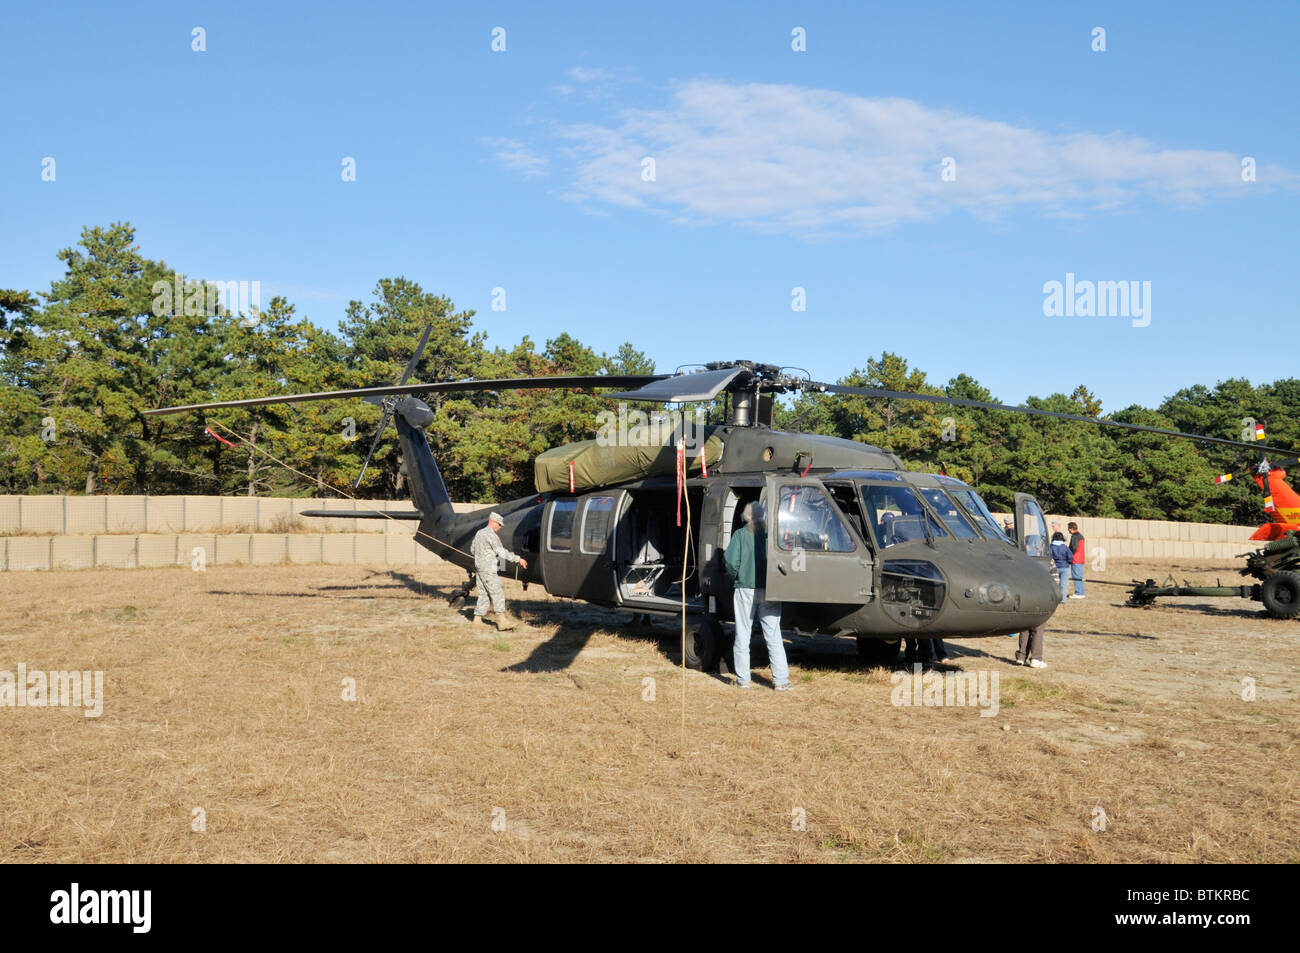 USA Military Helicopter on display at the Open House of Camp Edwards Massachusetts Military Reservation, Bourne, - Stock Image